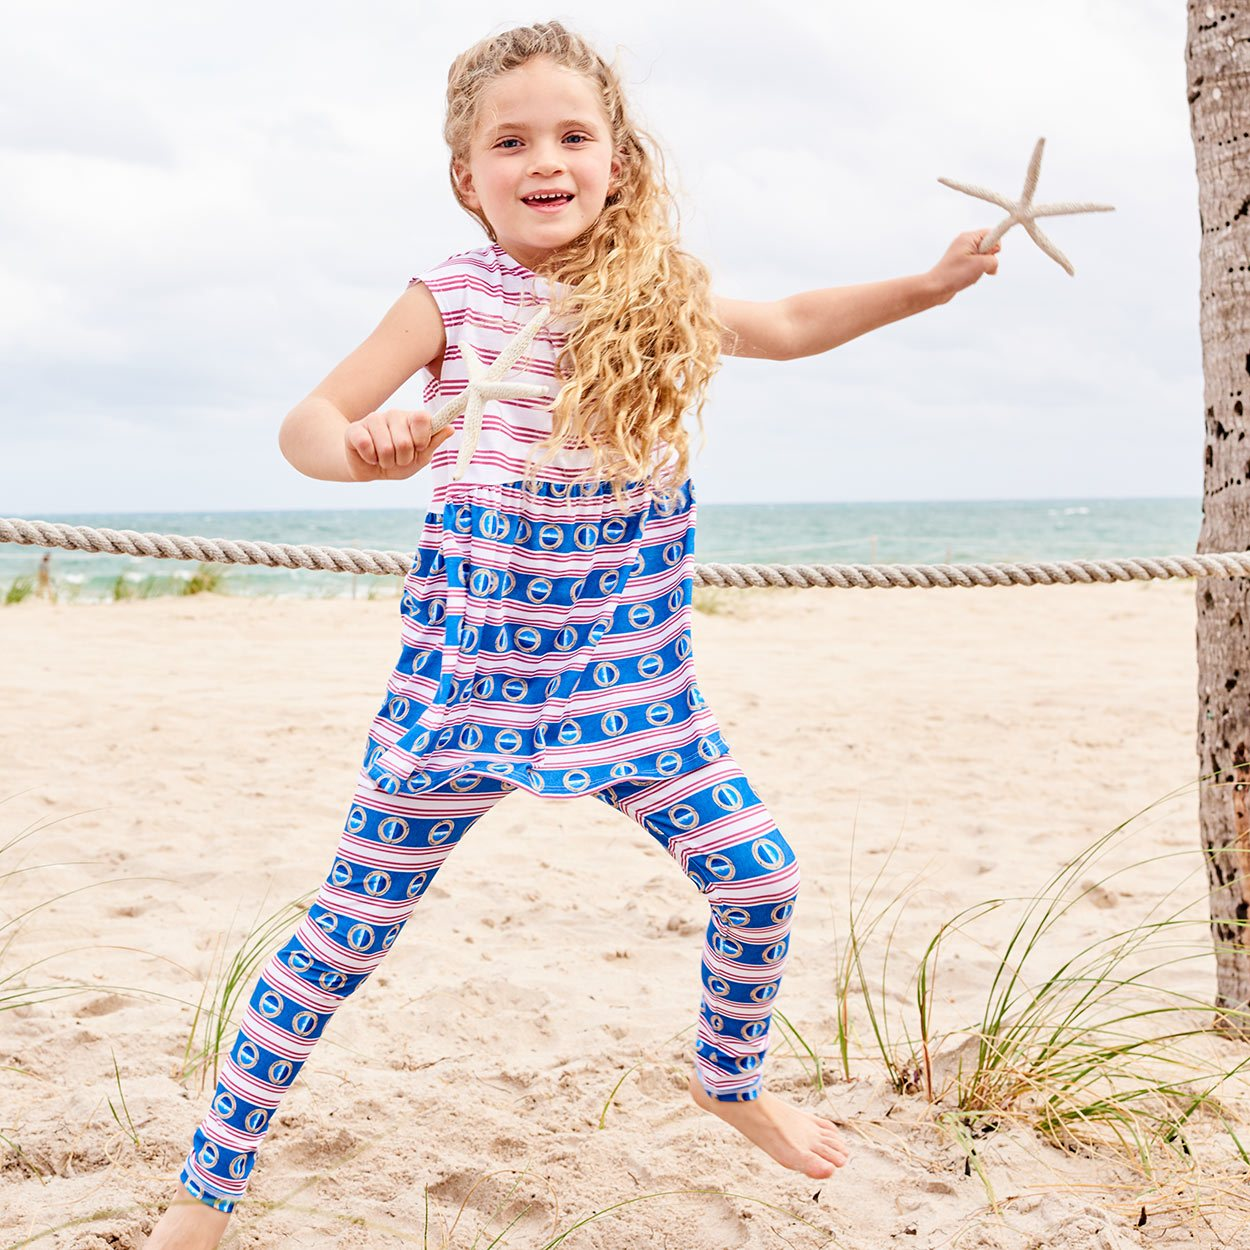 Mariner Hybrid Leggings Upf50 Kids Boys Girls Size 2 6 Red White Blue Stripes Denim Modern Mariner Unisex Girl On The Beach Jumping Wearing Leggings Under A Dress Sunpoplife